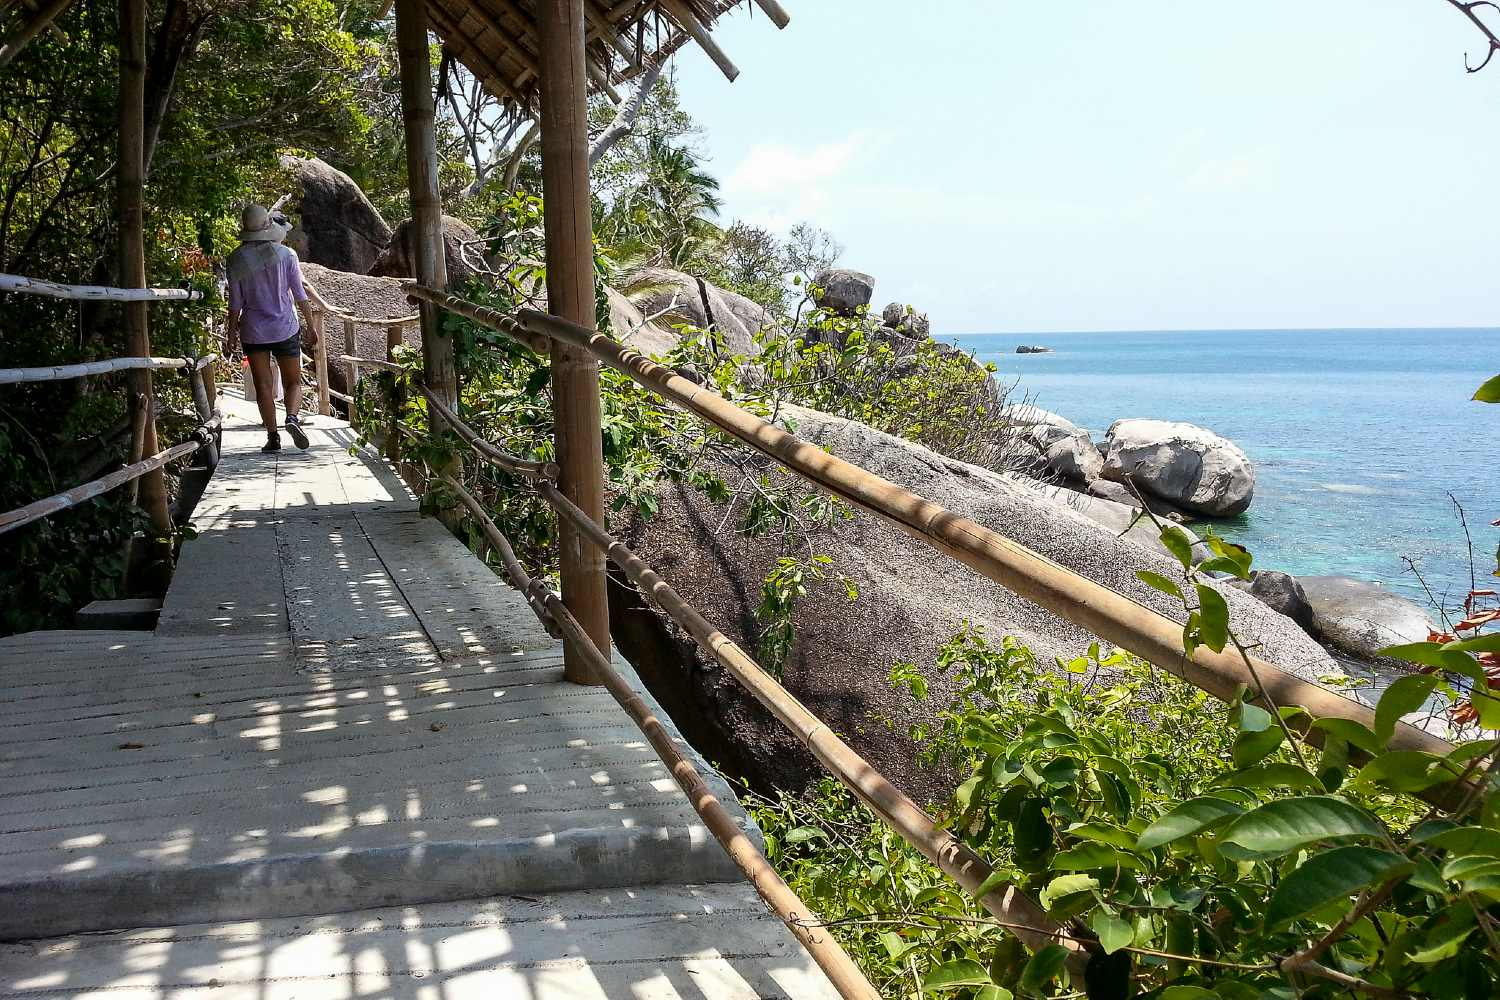 Walking route to Sai Nuan on Koh Tao with a beautiful view of the sea